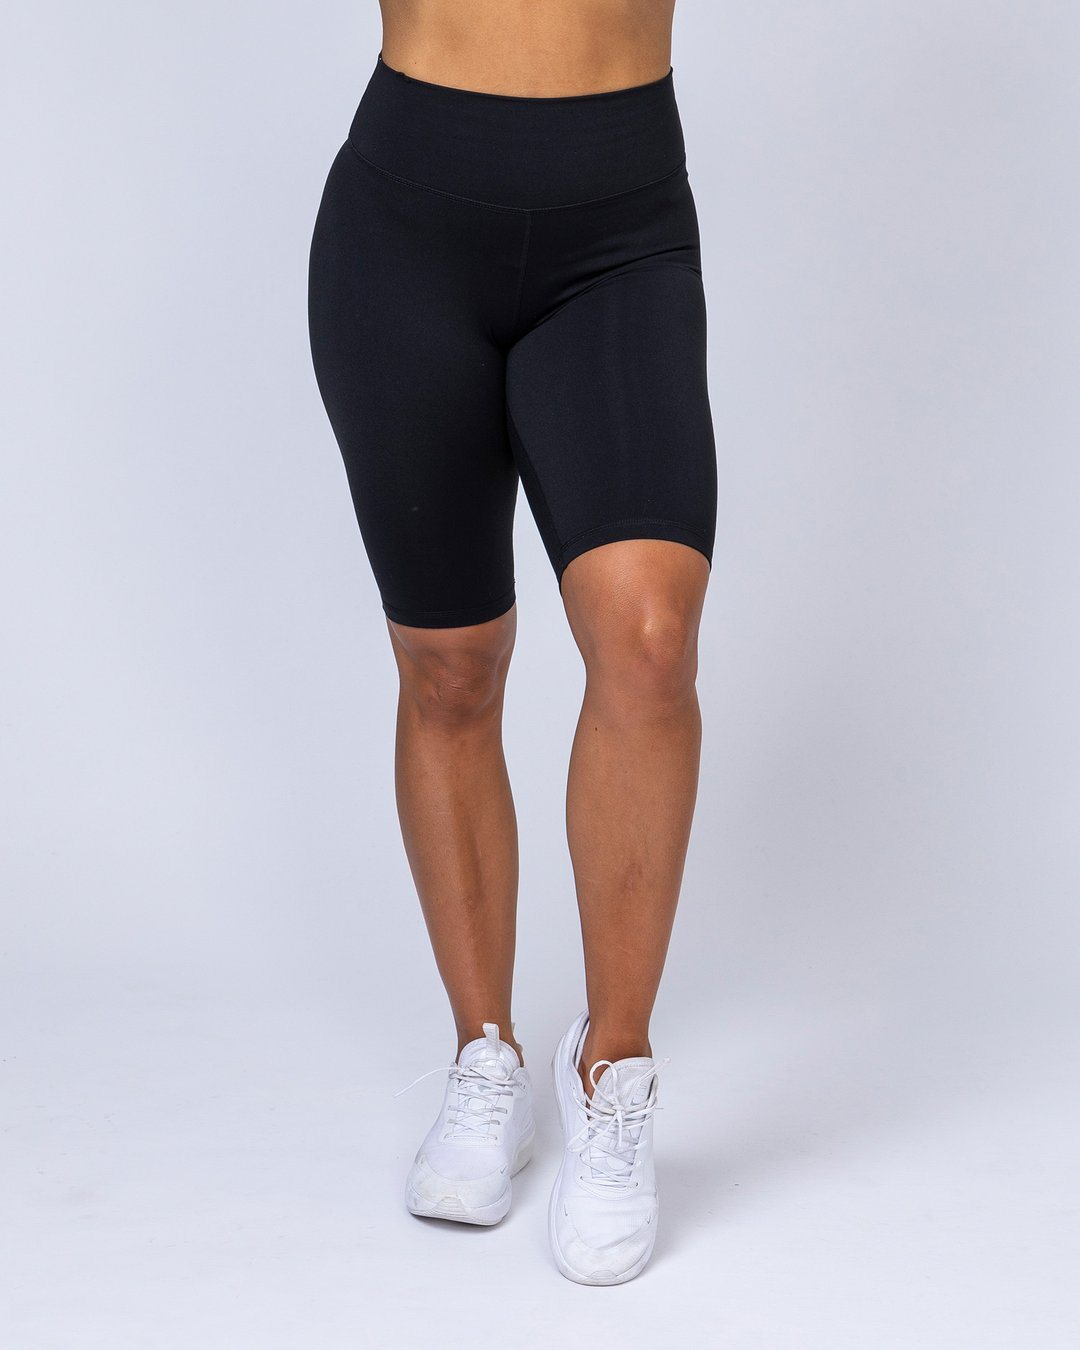 Muscle Nation Referee Length High Waist Scrunch Shorts - Black